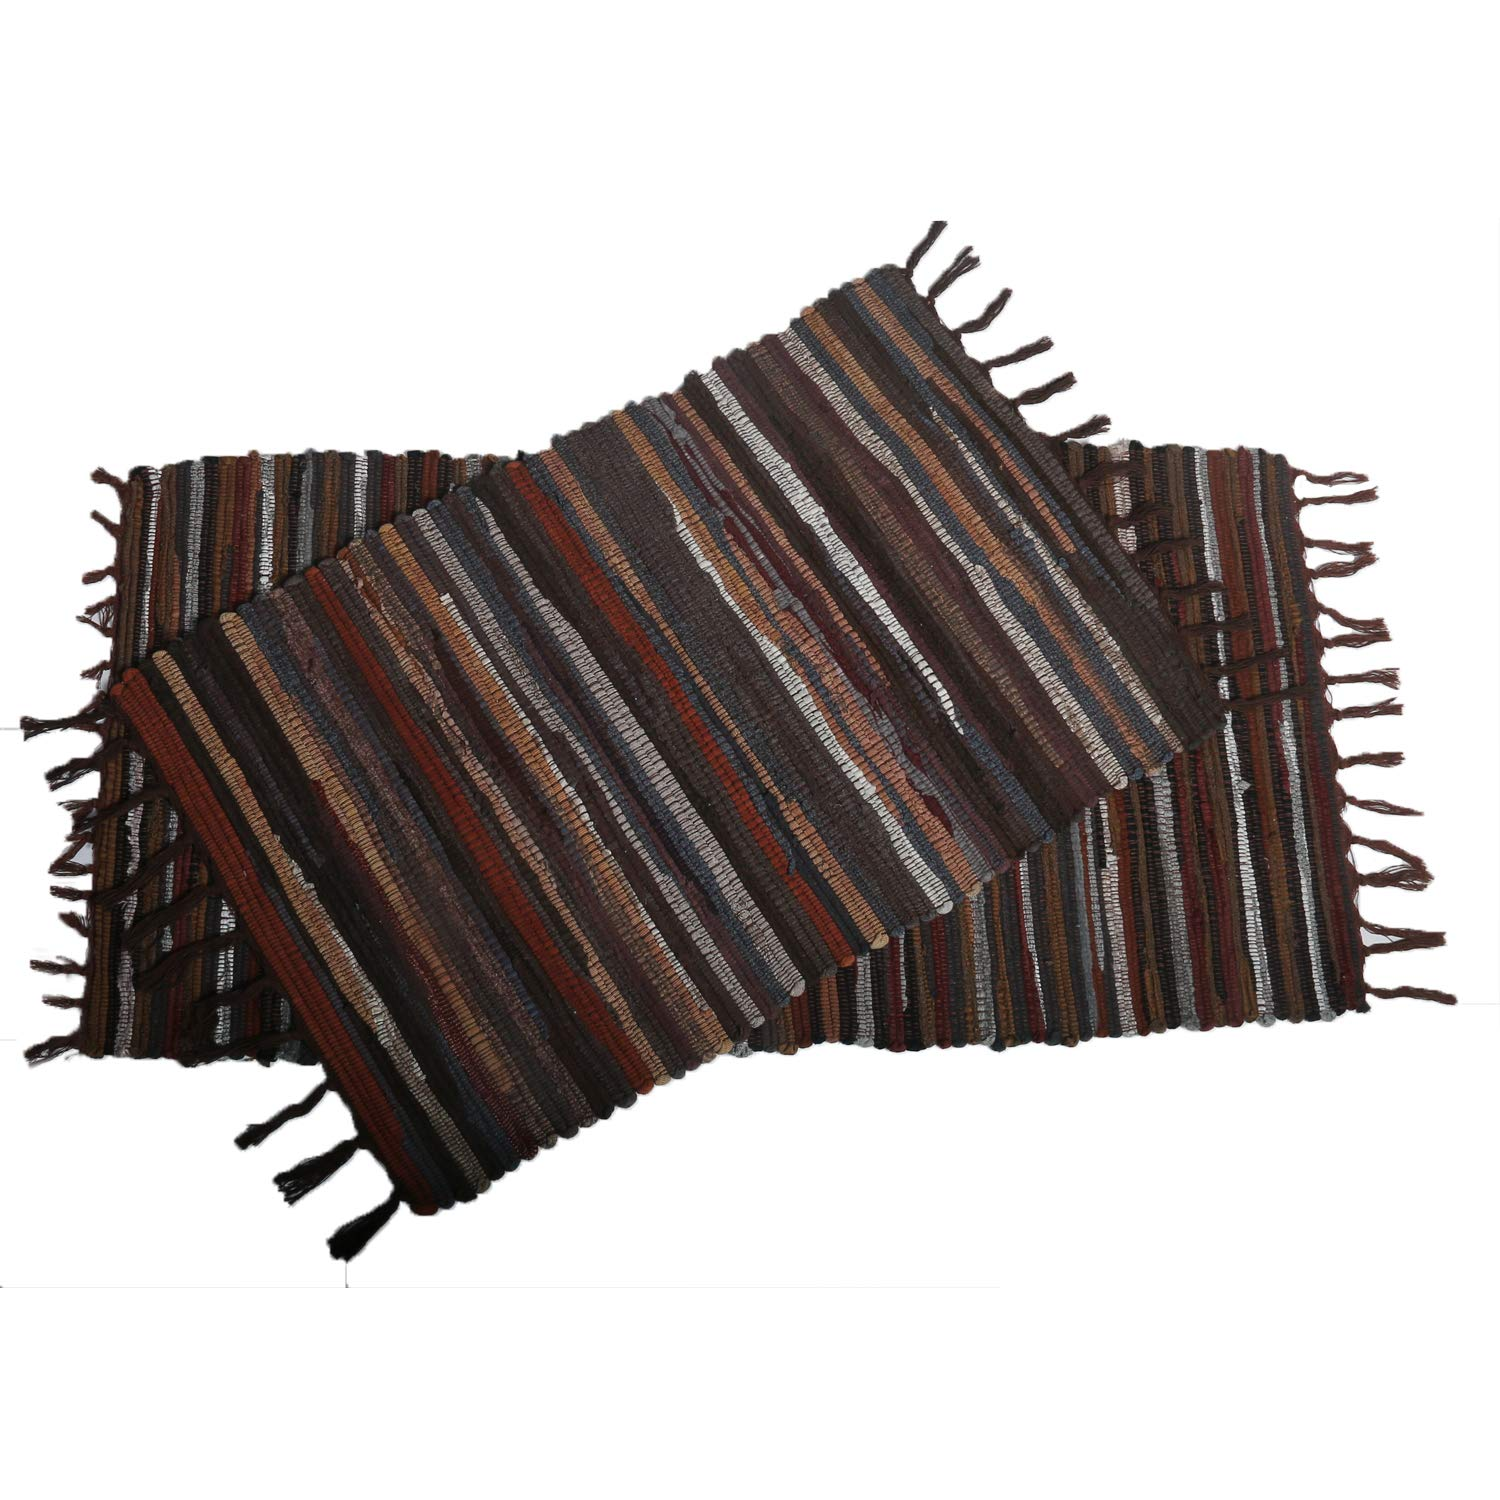 Amazon com uartlines cotton area rug set with tassels hand woven printed rug mat washable entryway for bedroom kitchen laundry room 2x3 2x4